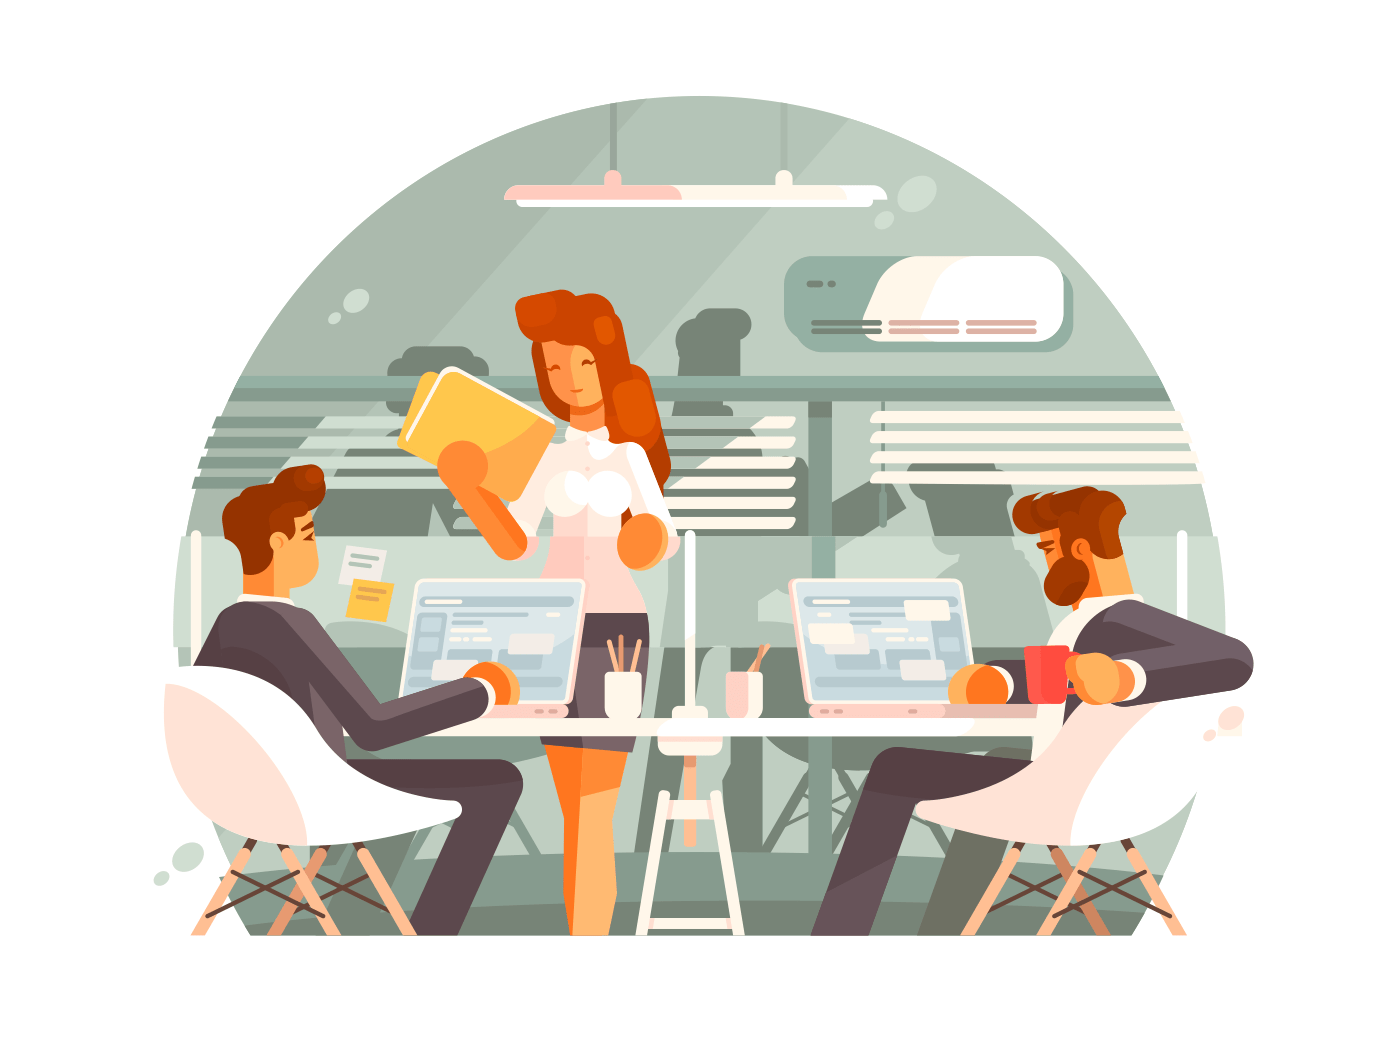 Workflow in business office illustration